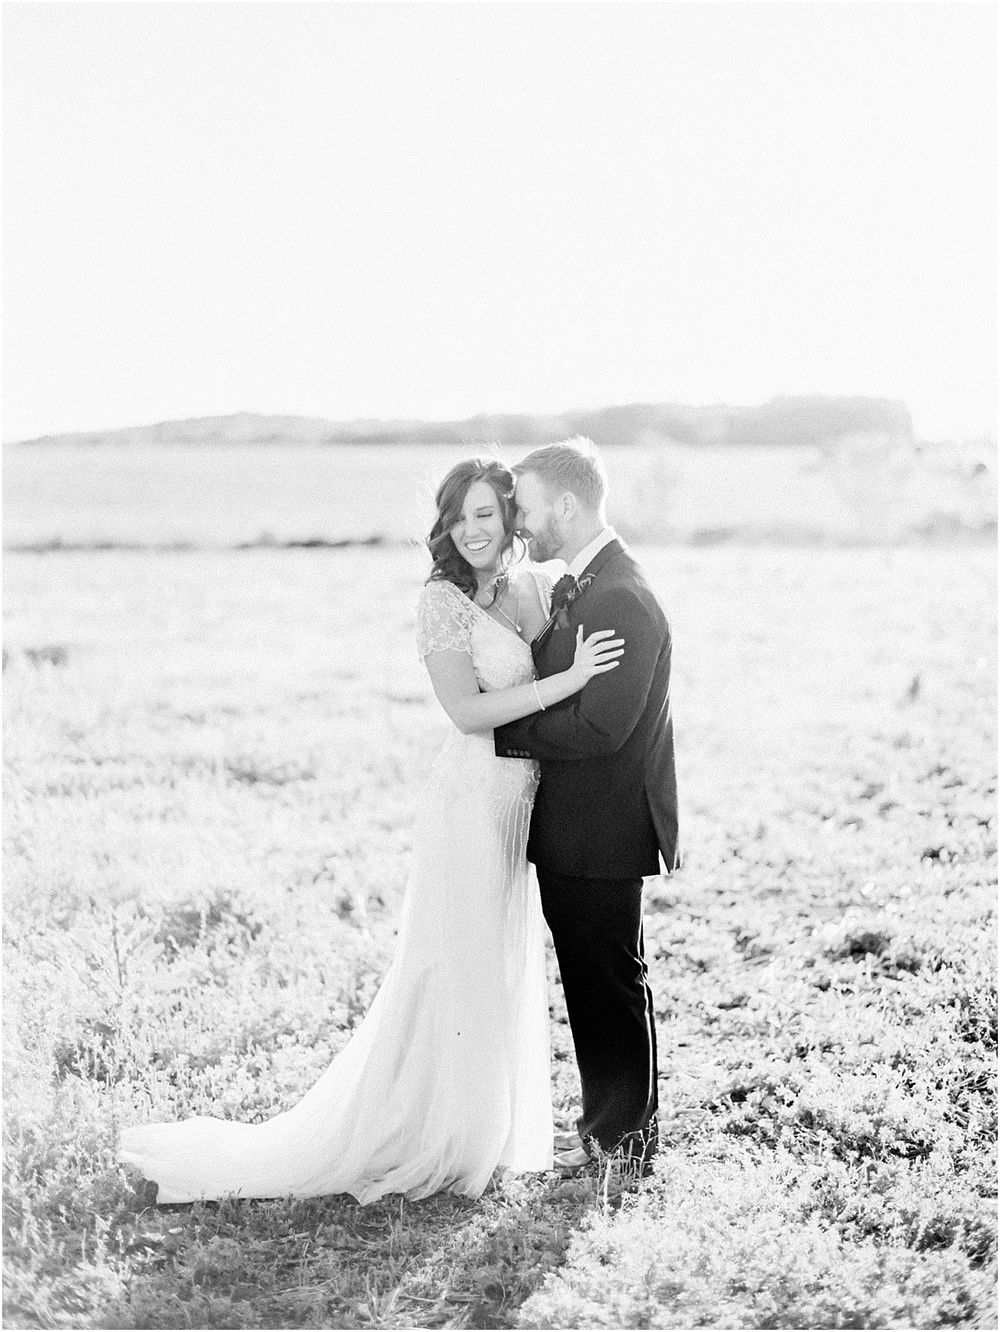 Springfield Mo Wedding Photographer - Jordan Brittley Photography (jordanbrittley.com)